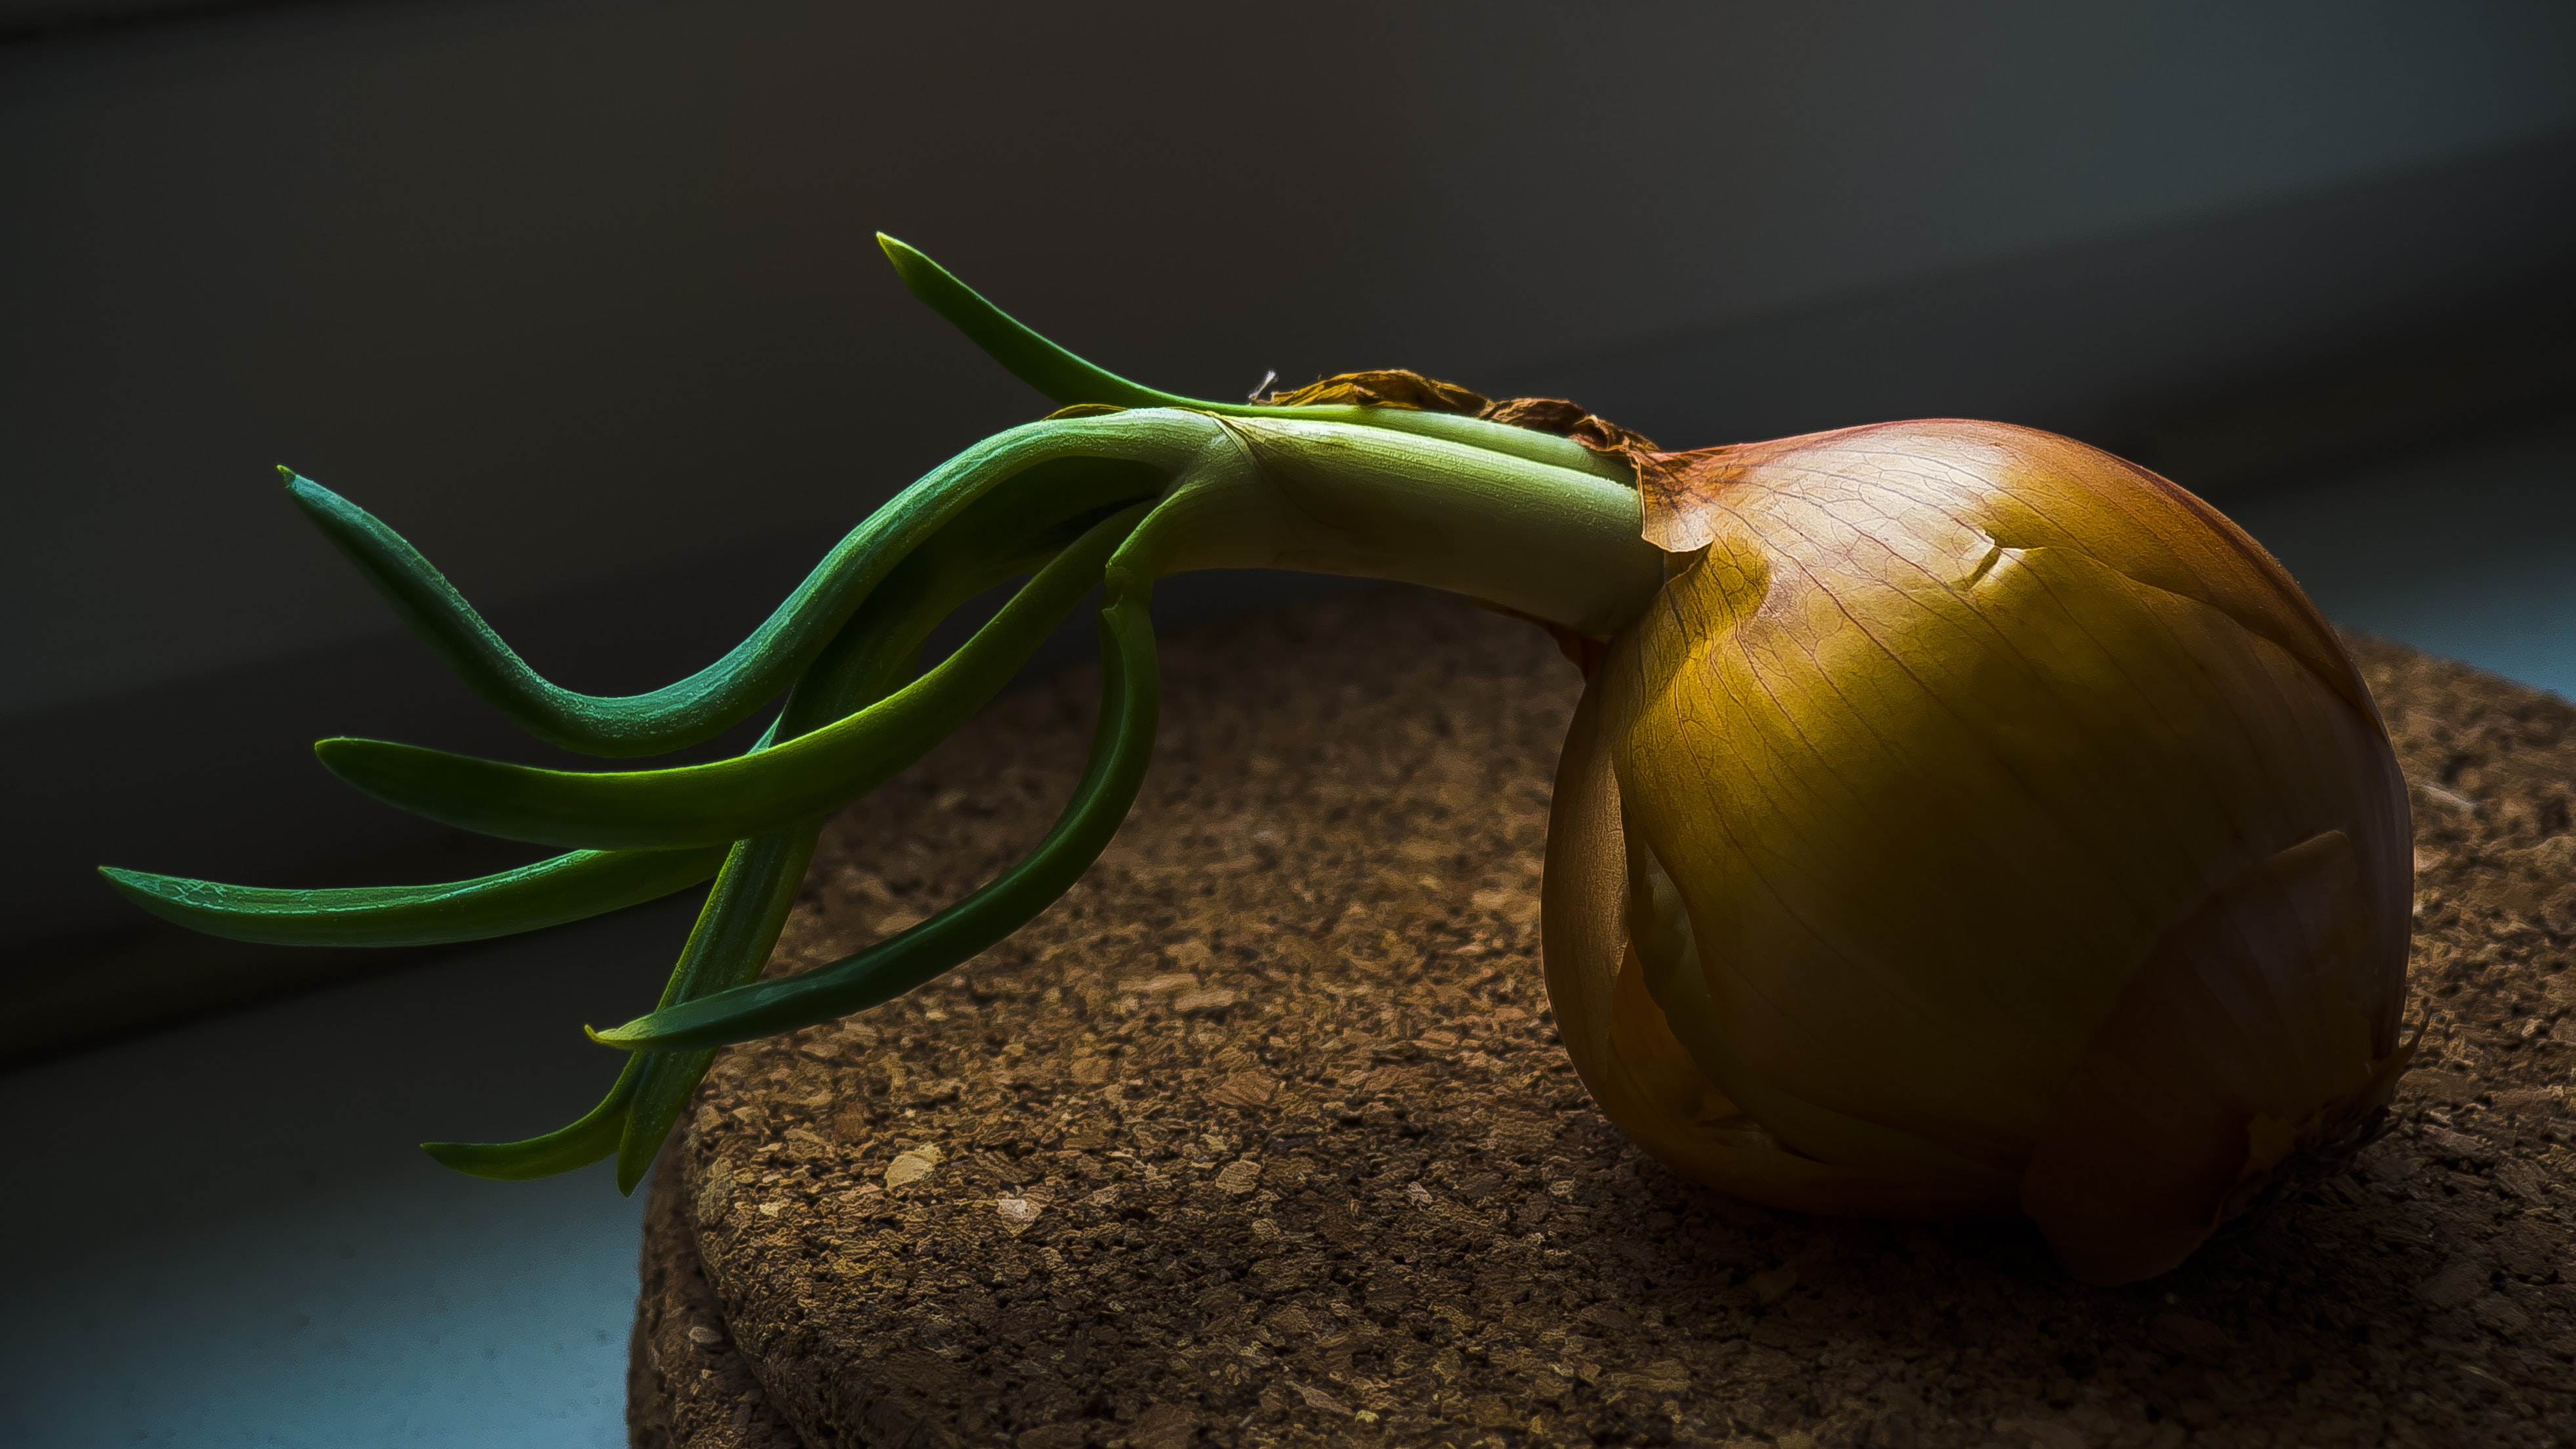 brown onion with green sprout